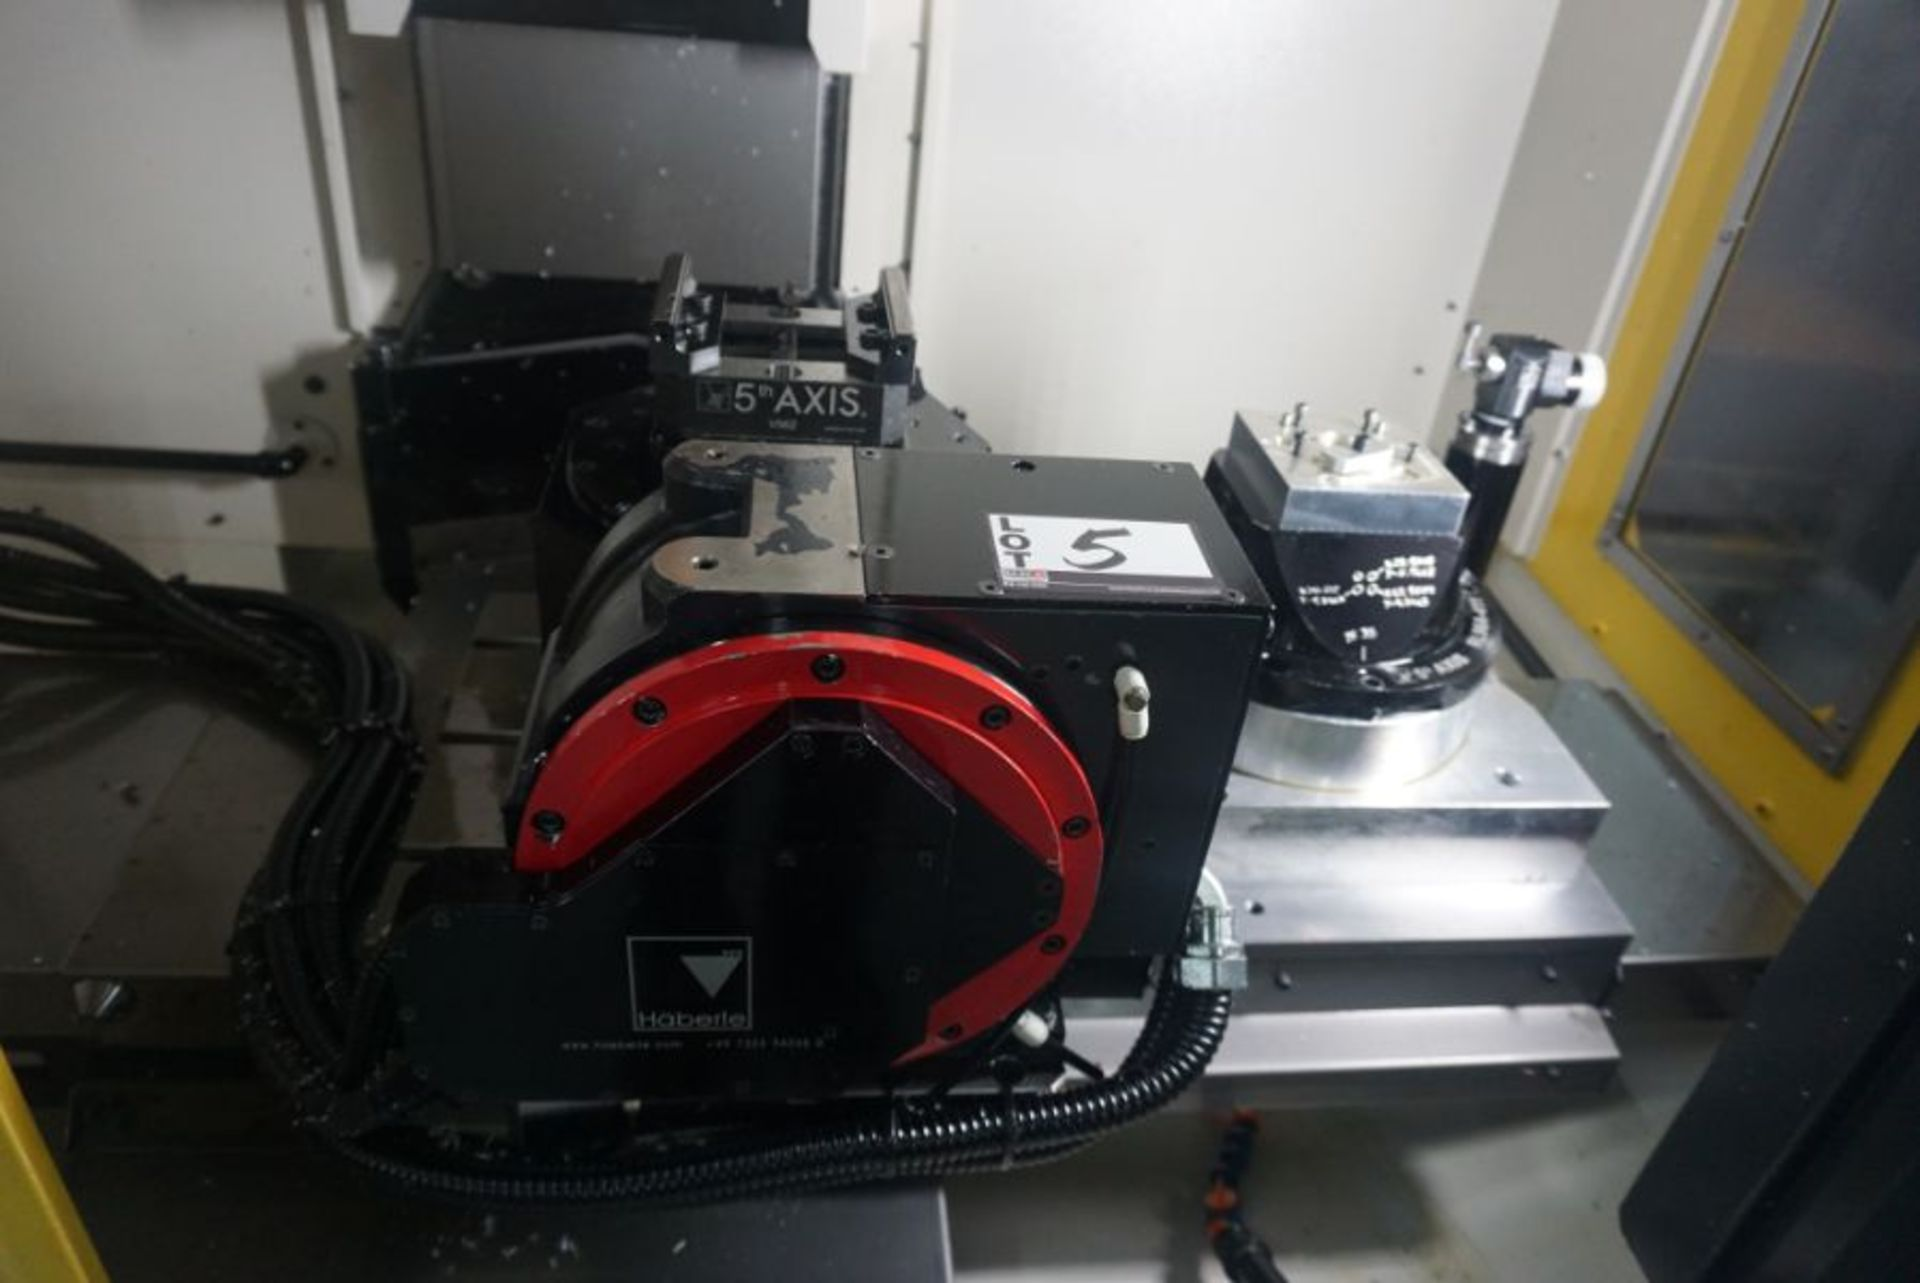 Haberle Fanuc DDRiB 5 Axis Rotary Table, s/n P183DXN18, New 2018 - Image 3 of 3